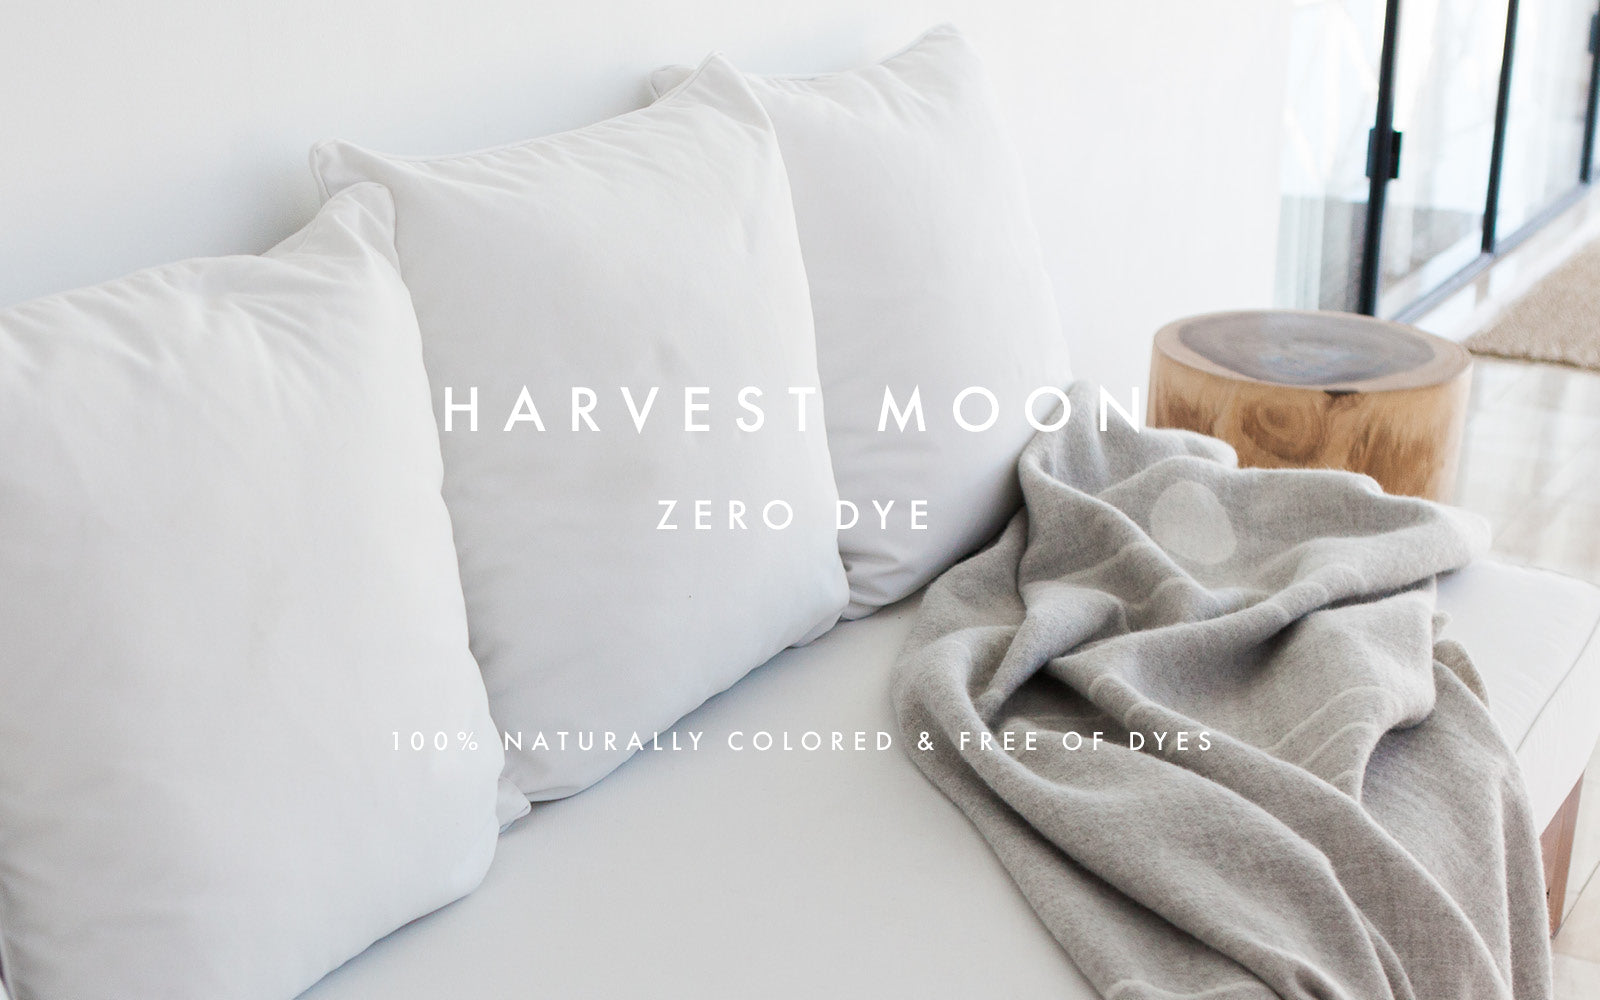 Blacksaw Harvest Moon Zero Dye Reversible 100% baby alpaca throws and wall art